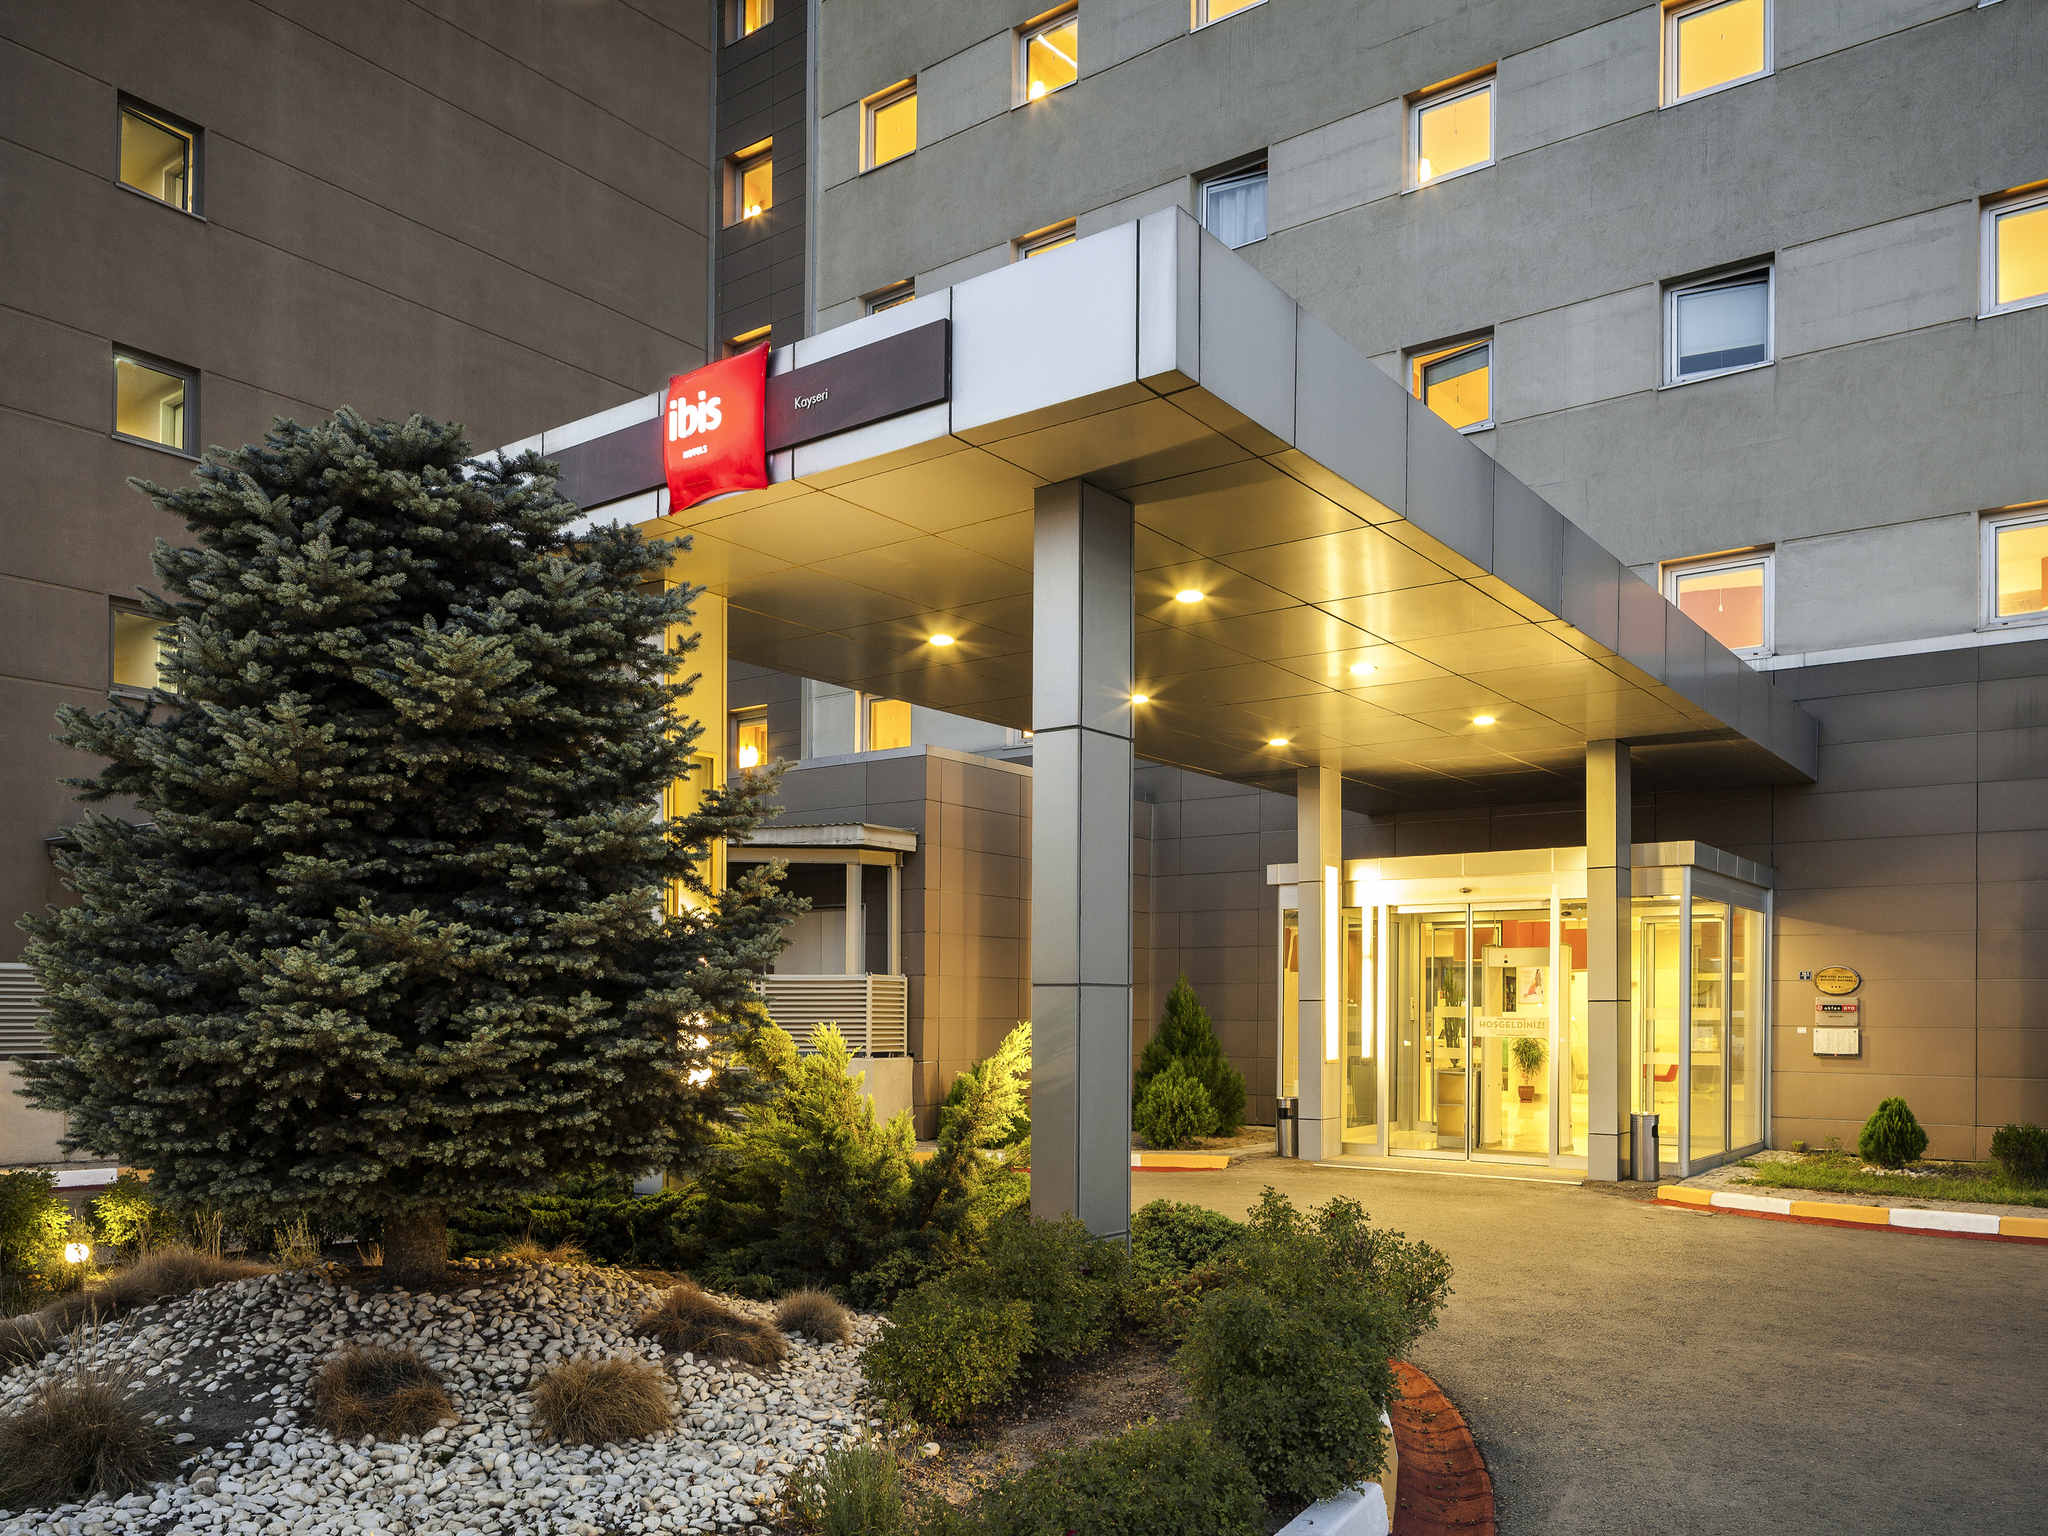 bis kayseri offers peace of mind and a relaxed stay